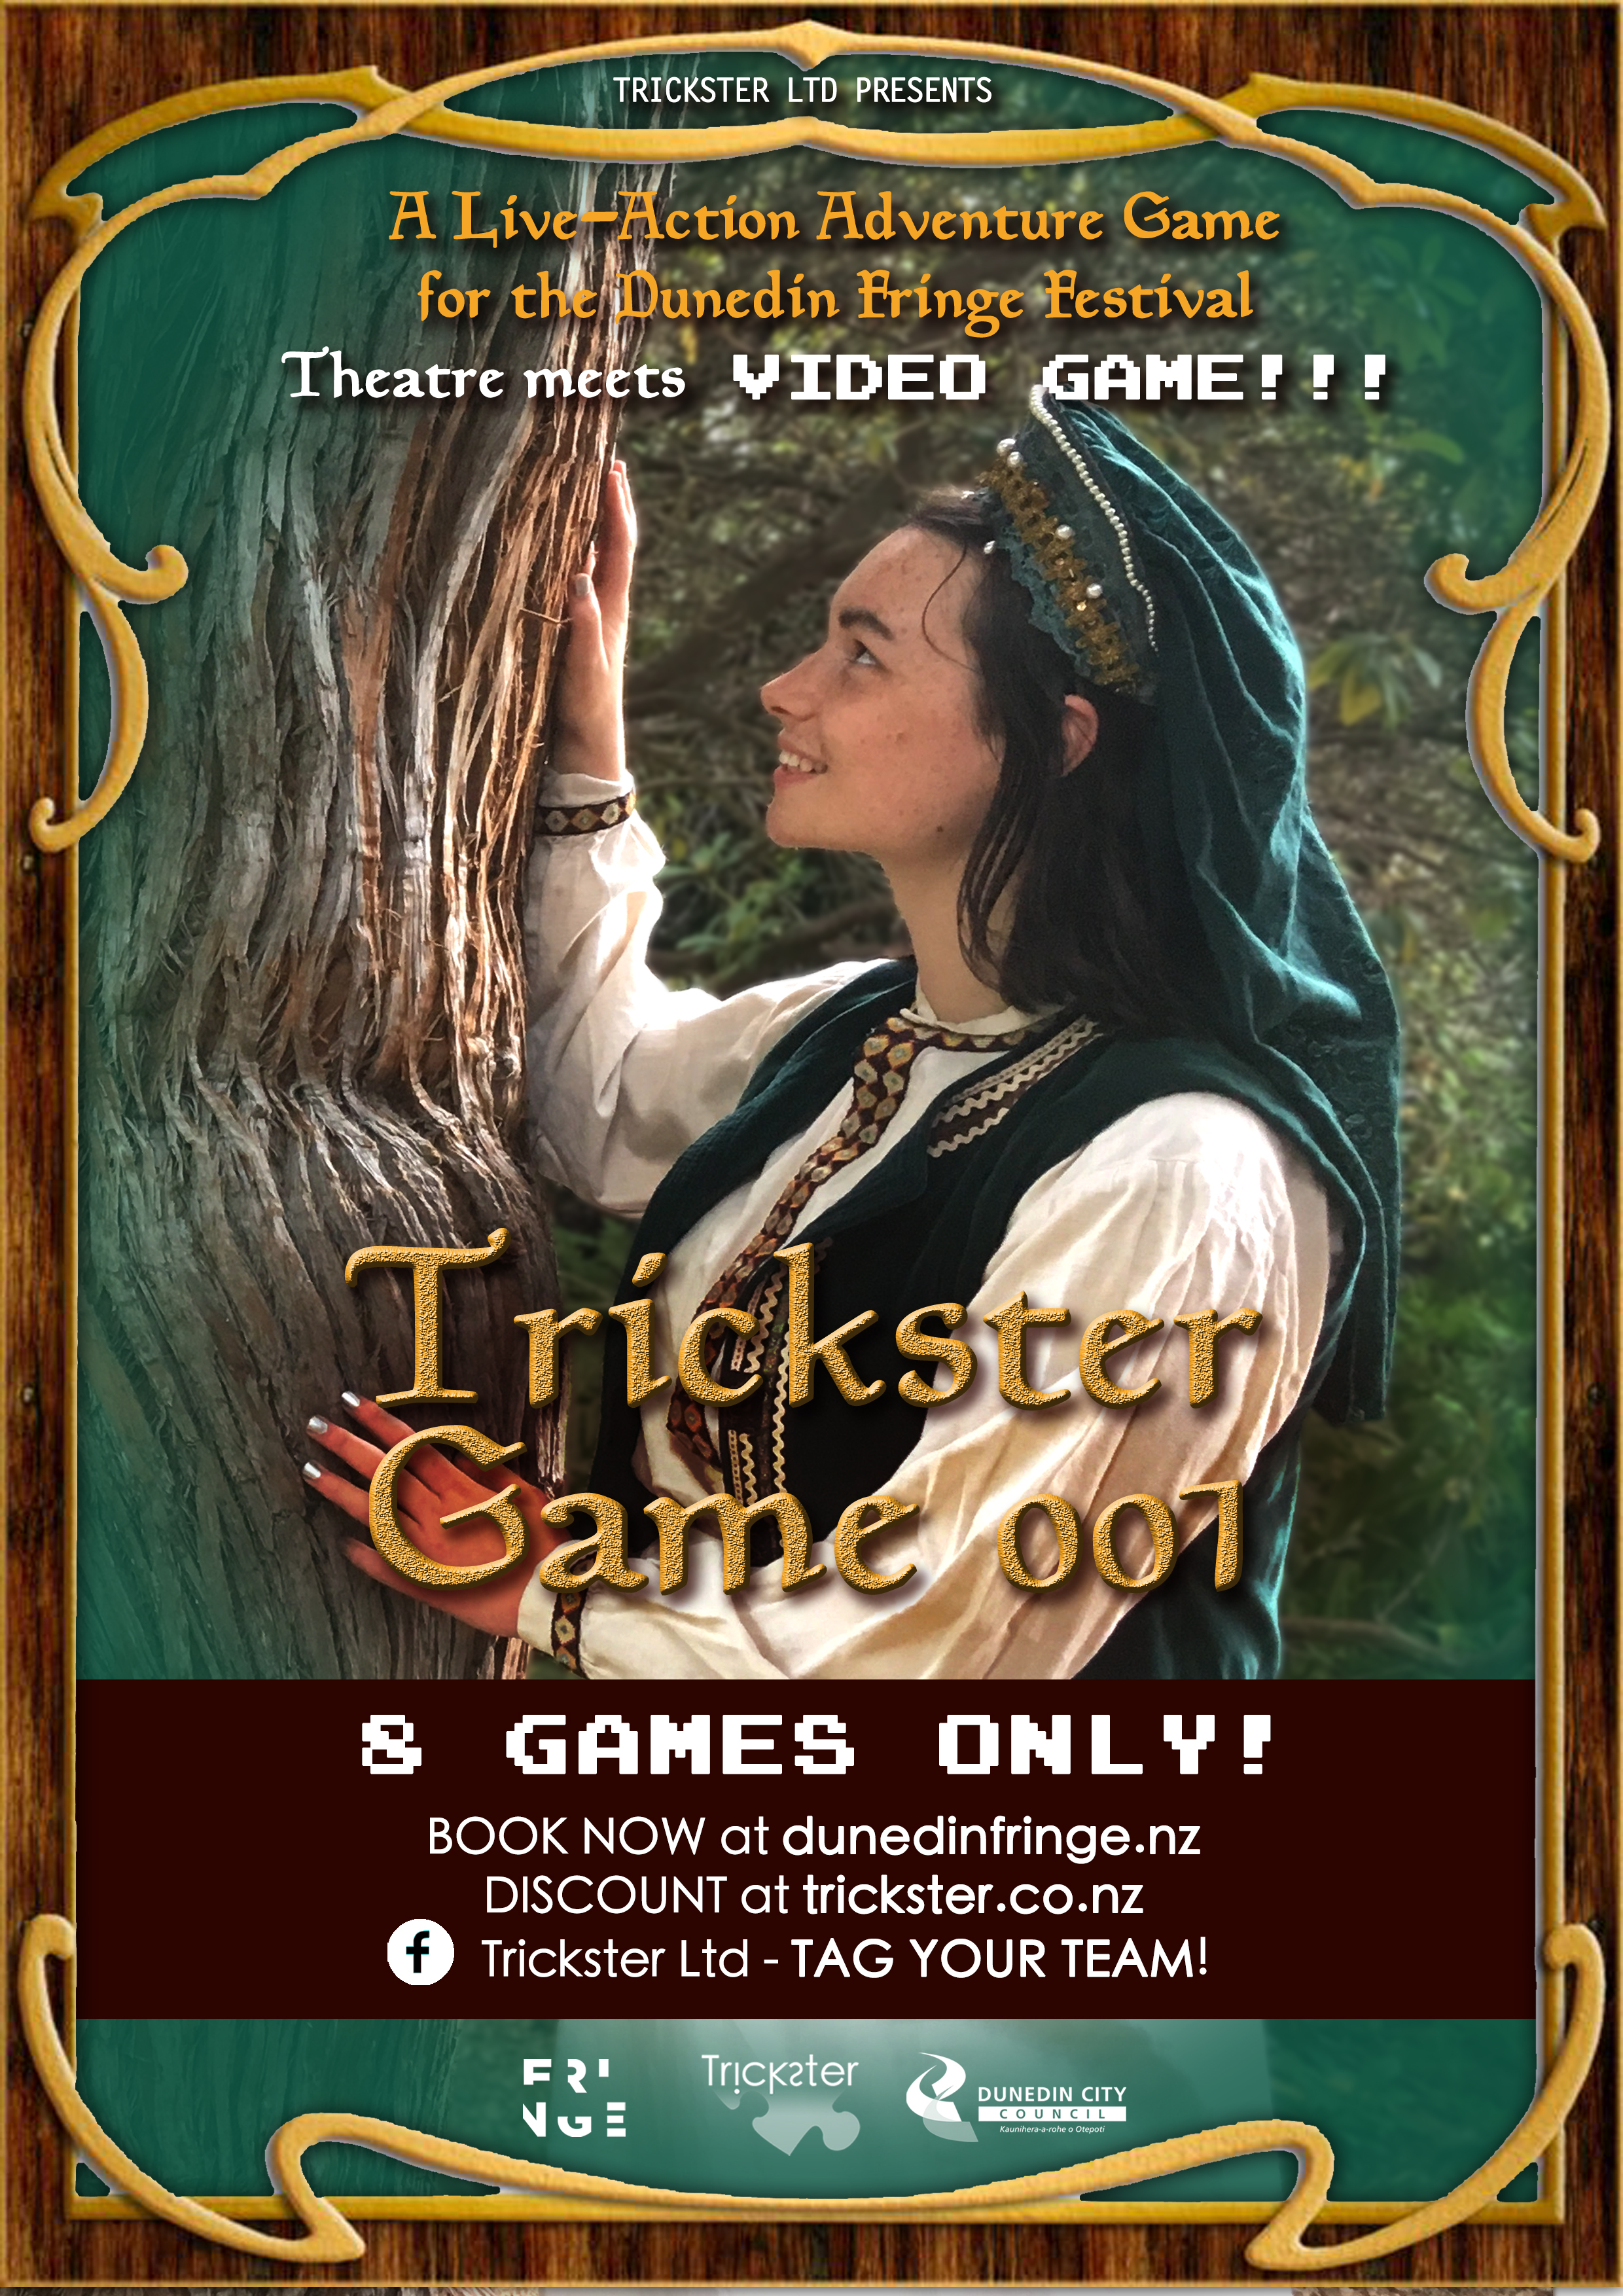 Just finished: Trickster Game 001 - GATHER YOUR TEAM FOR AN INTERACTIVE LIVE-ACTION ADVENTURE THROUGH THE MAZE-LIKE FORESTED PATHS OF THE UPPER DUNEDIN BOTANIC GARDEN.